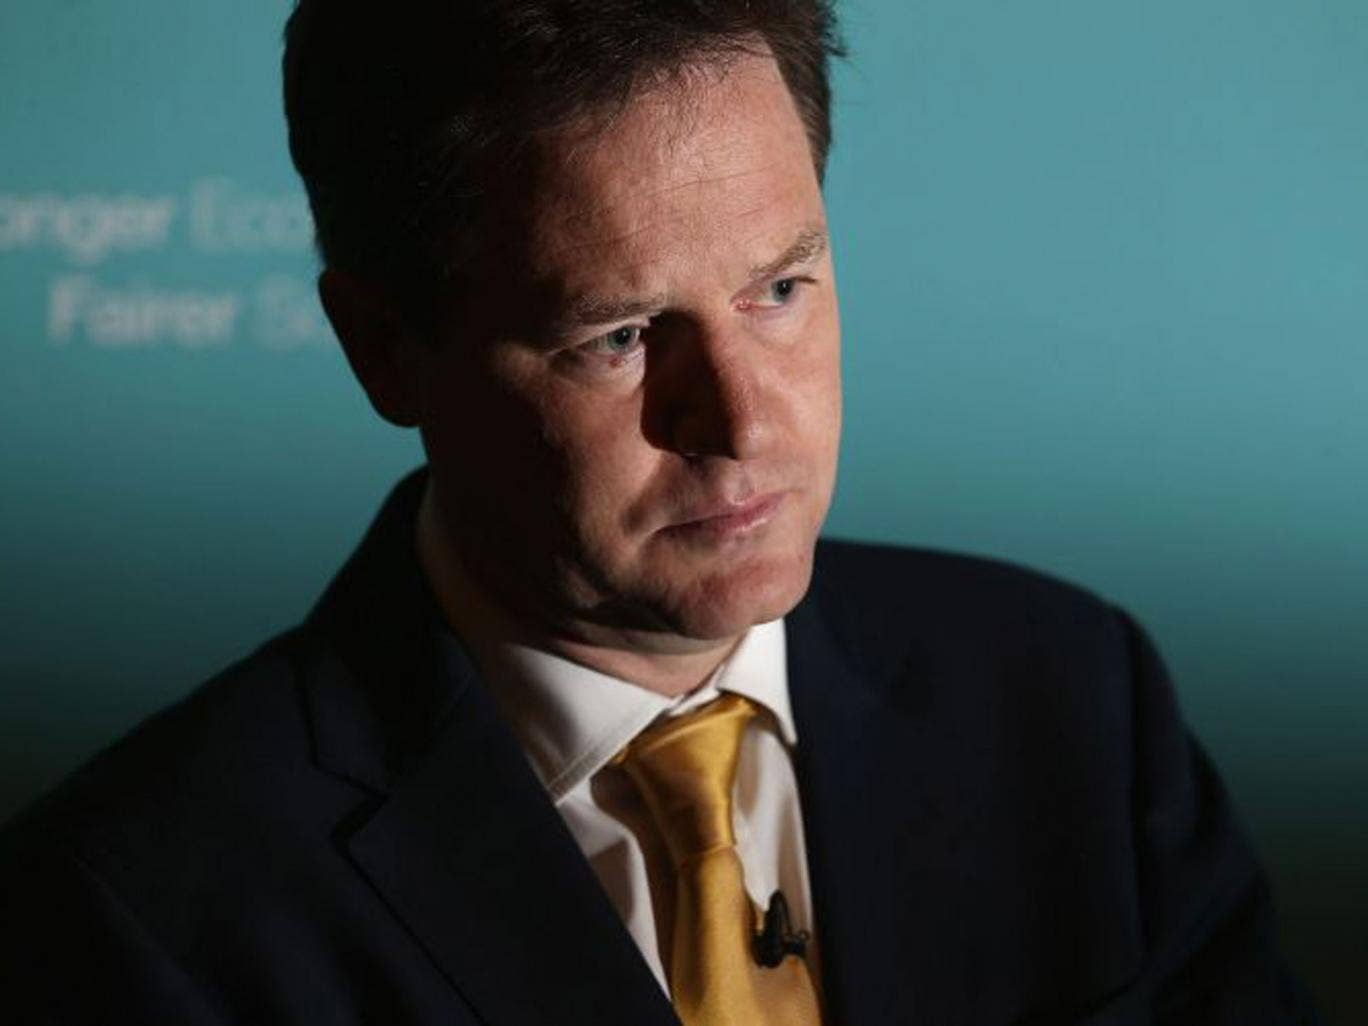 Nick Clegg criticised David Cameron's plans for a Europe referendum and to reward marriage in the tax system